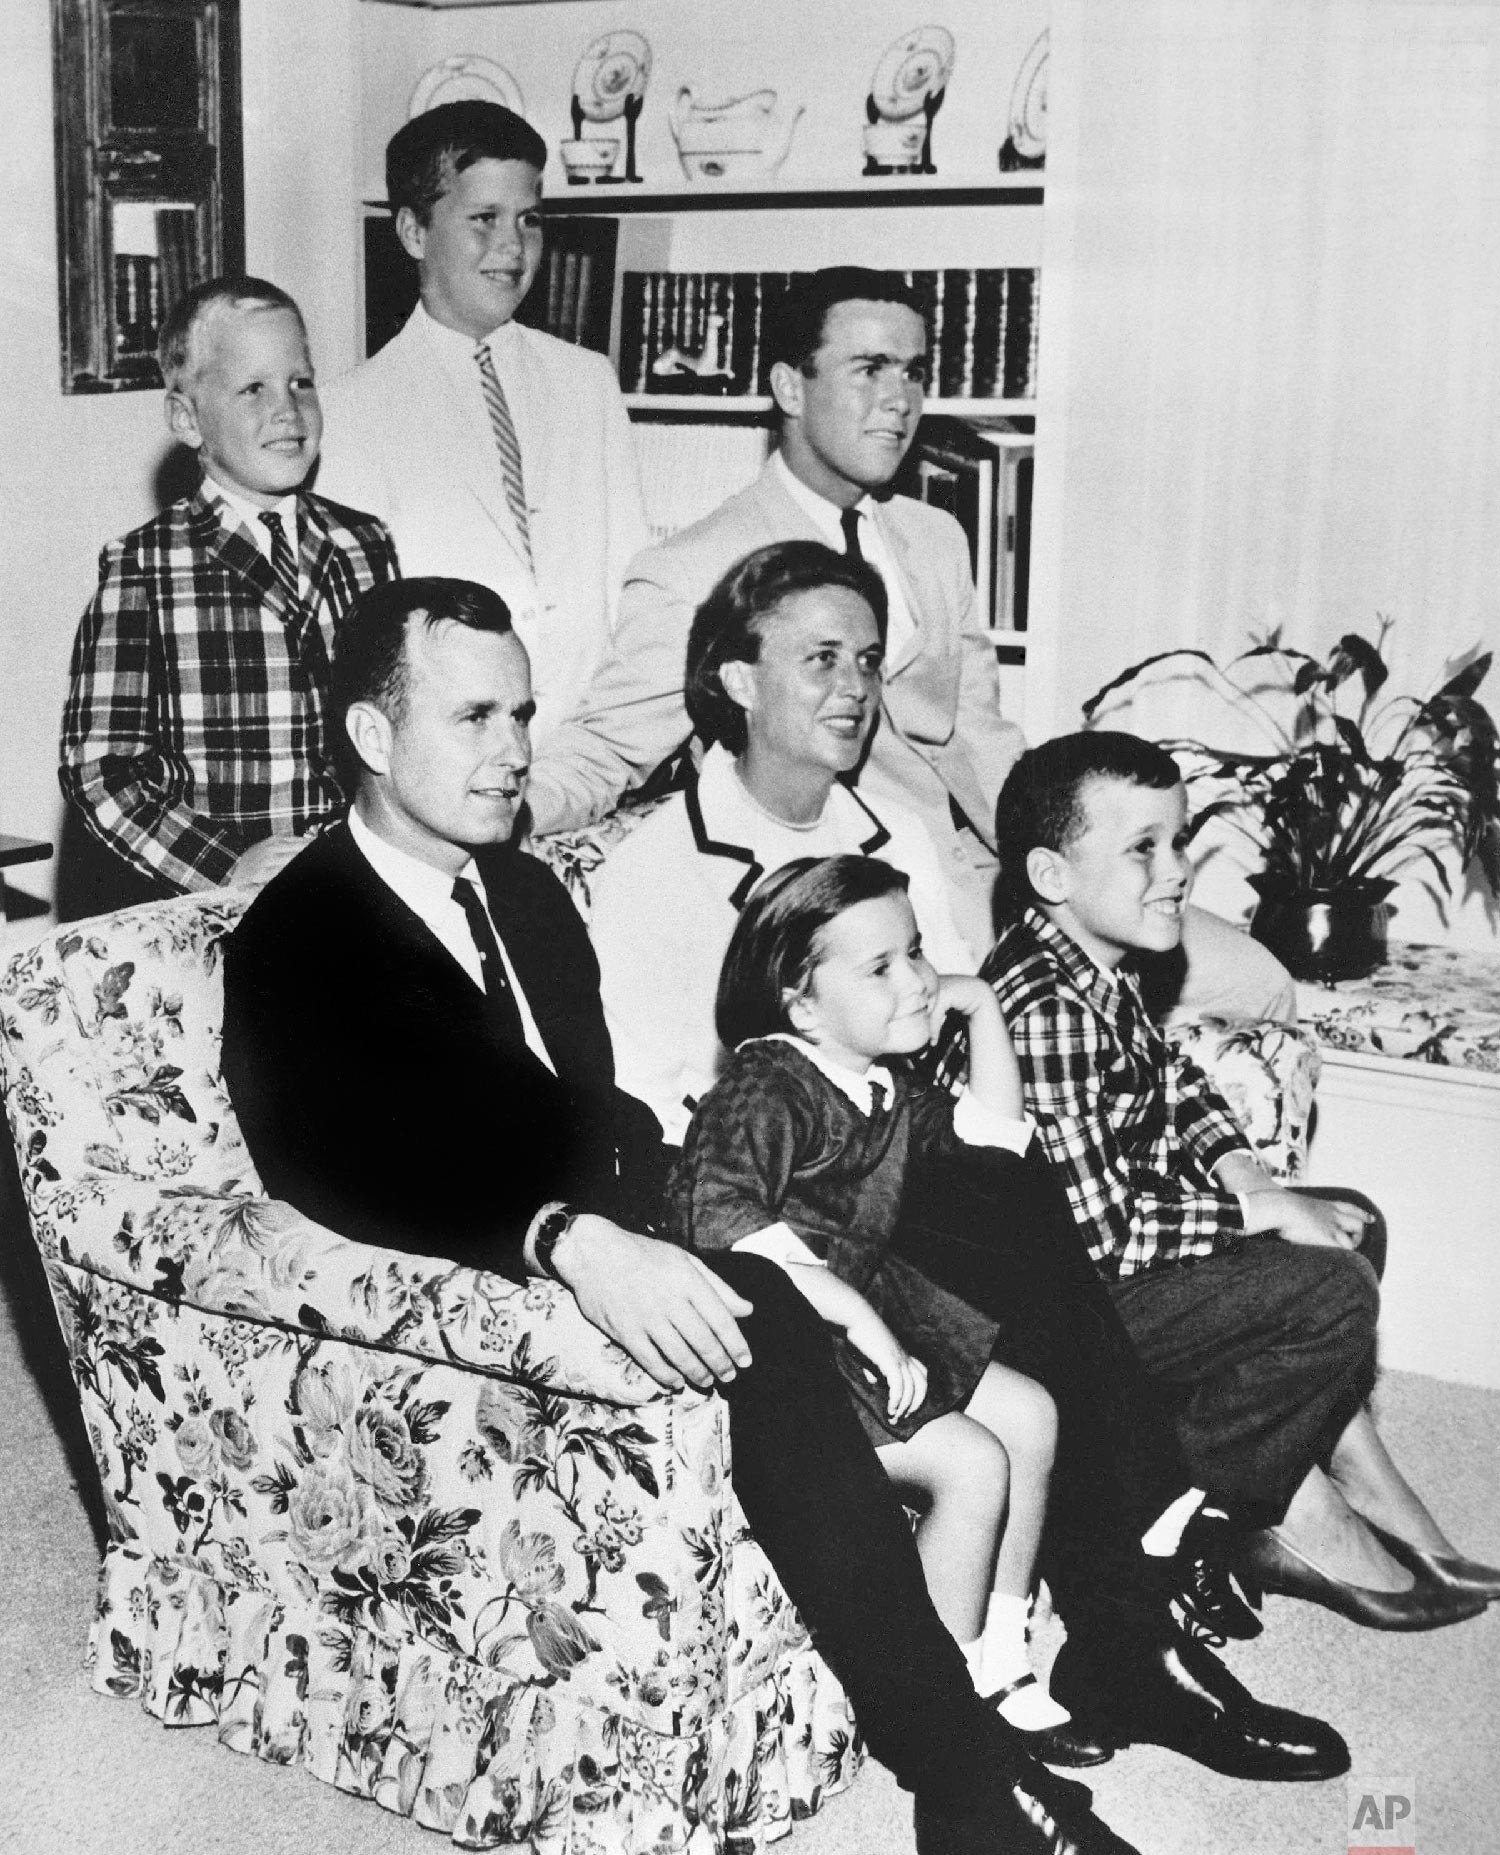 George H.W. Bush sits on a couch with his wife Barbara and their children in 1964. George W. Bush sits at right behind his mother. Behind the couch are Neil and Jeb Bush. Sitting with parents are Dorothy and Marvin Bush. (AP Photo)